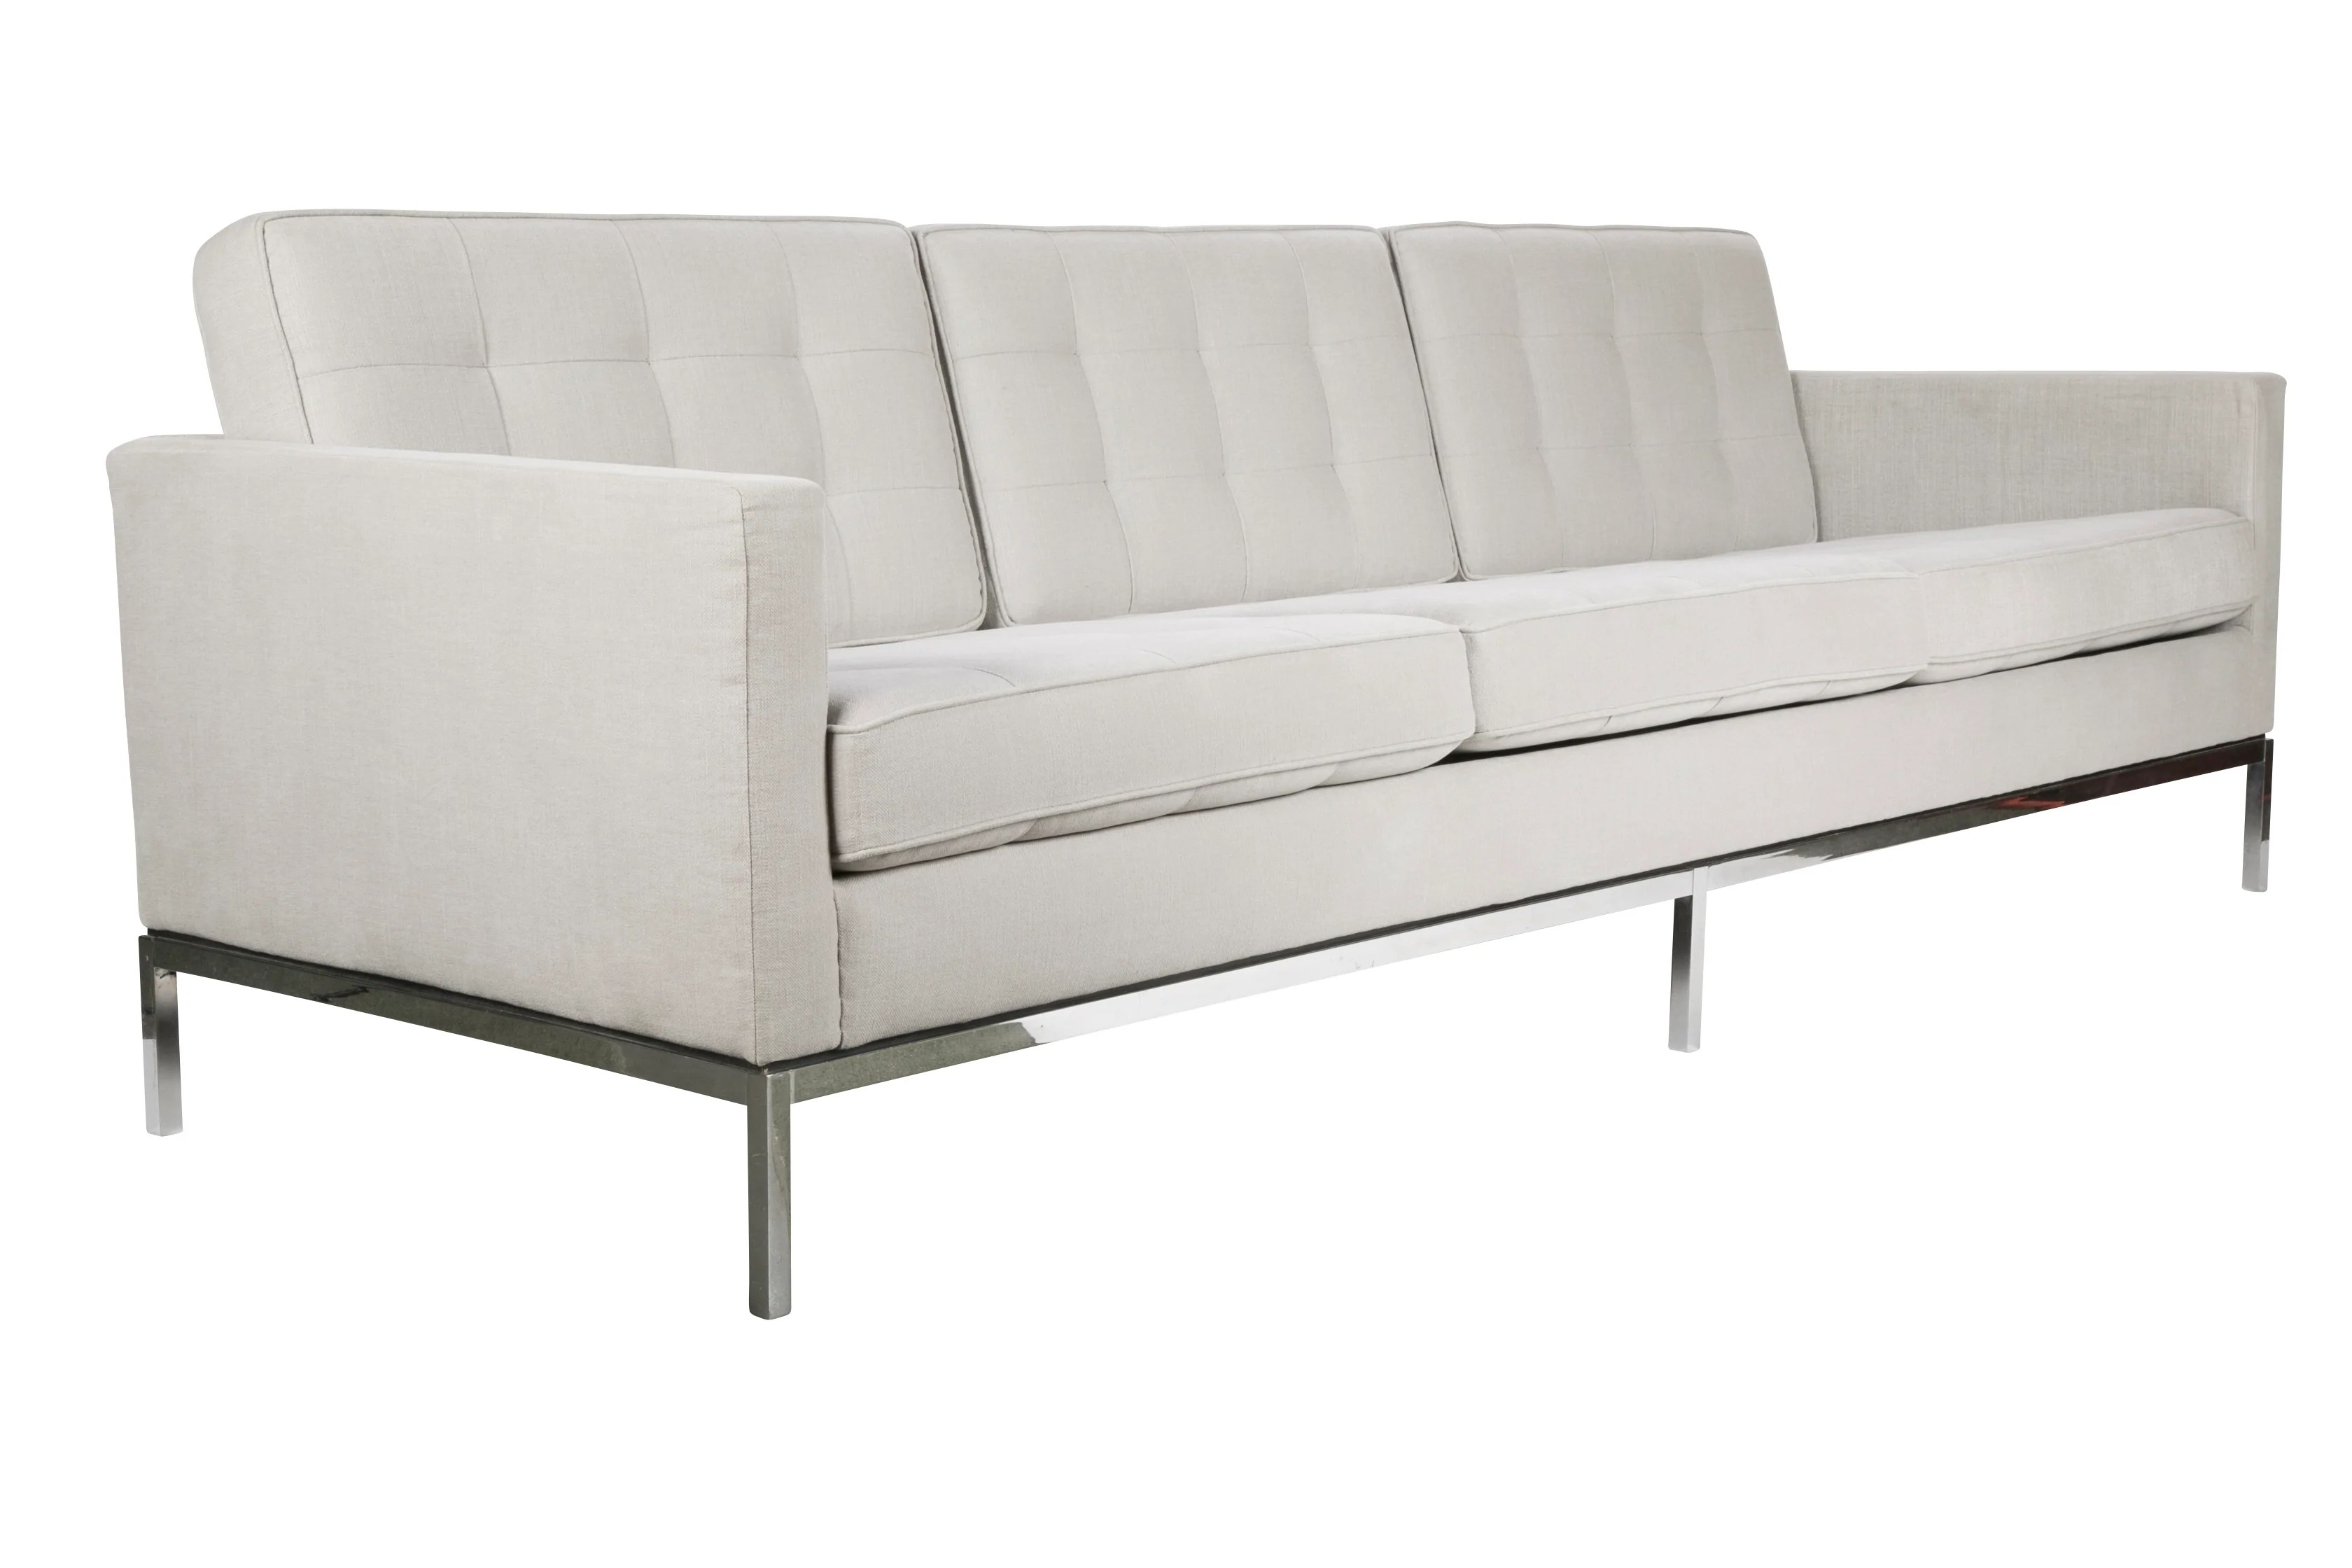 Florence Knoll Sessel Early Florence Knoll Sofa On Chrome Legs